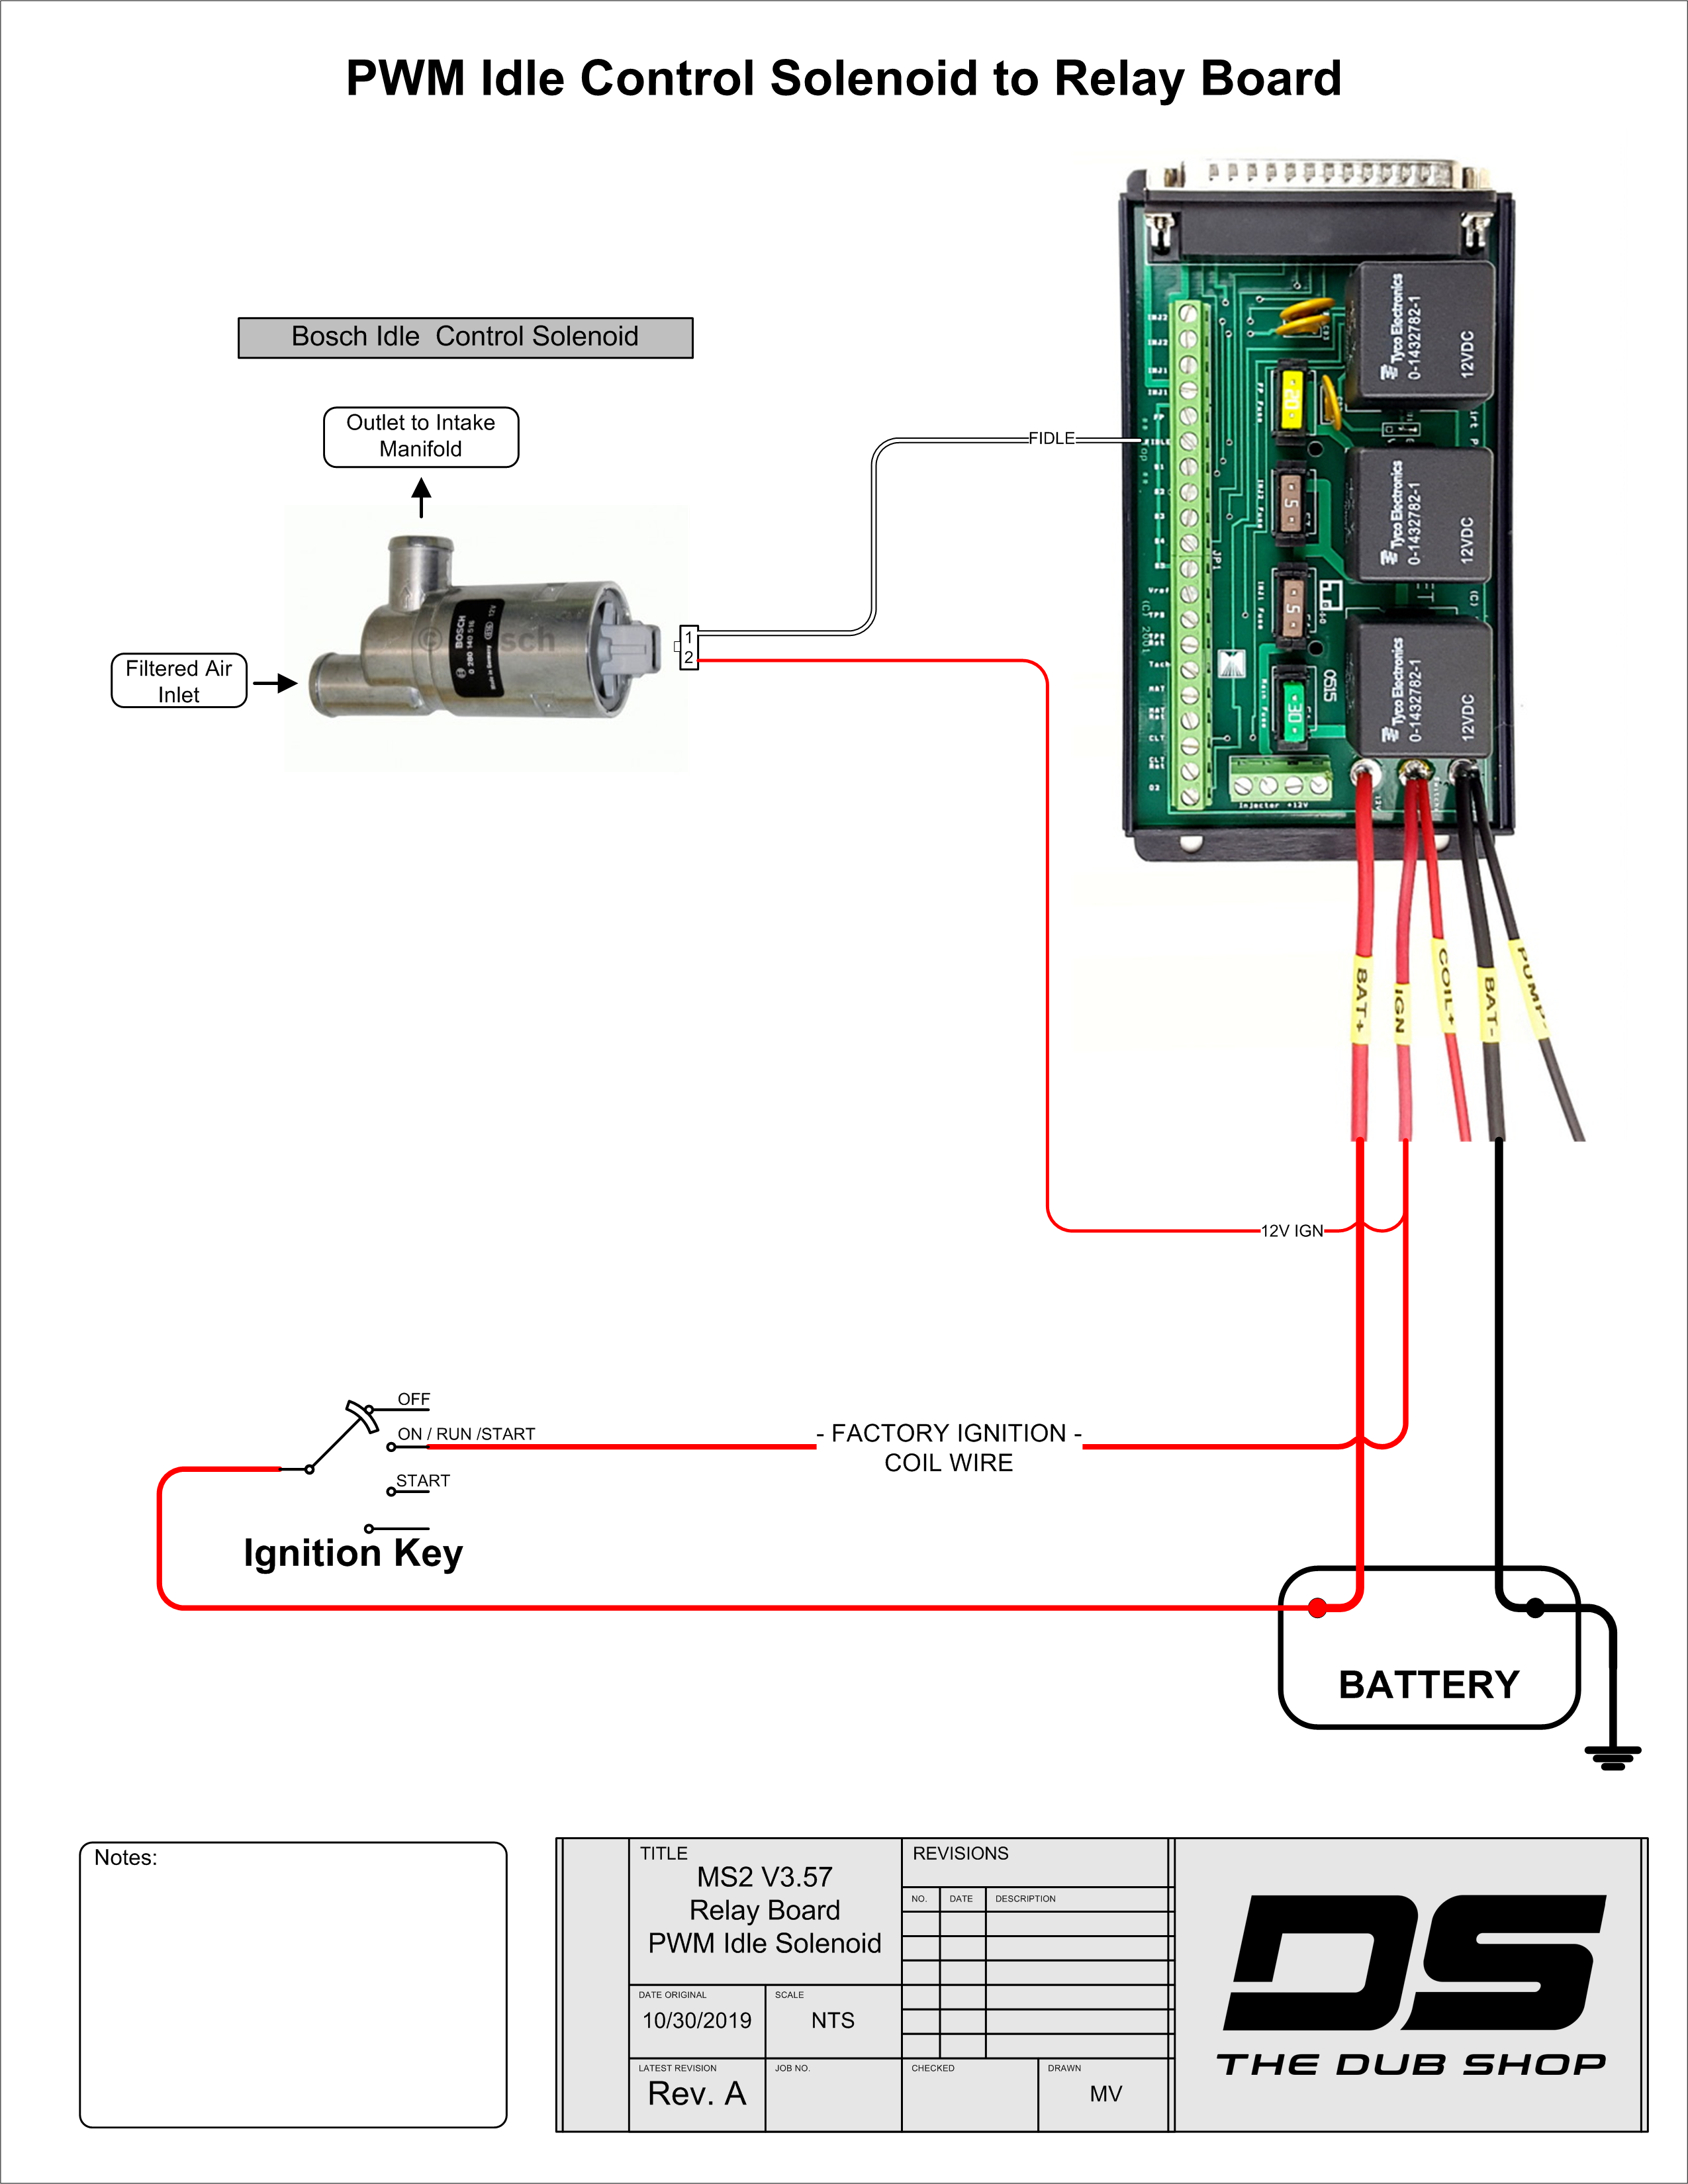 ms2-v357-relay-board-pwm-idle-solenoid.png